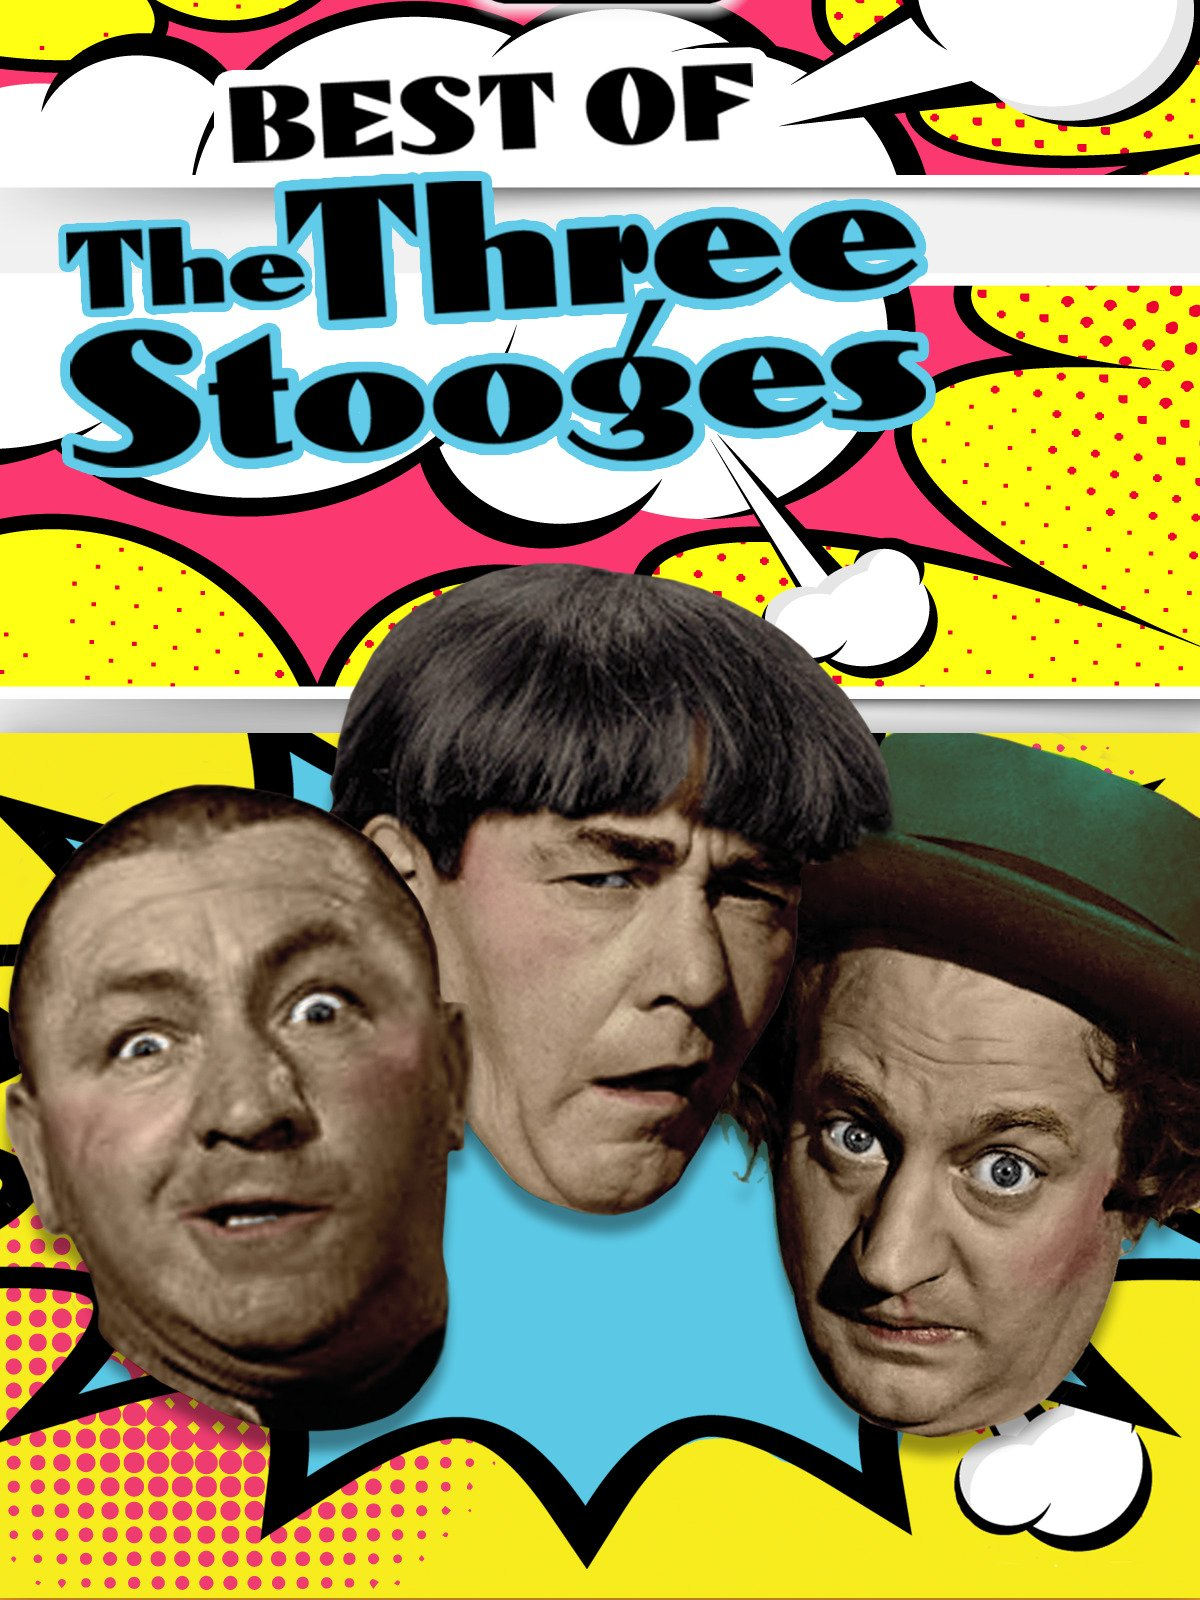 The Best of the Three Stooges: Henry the Ache